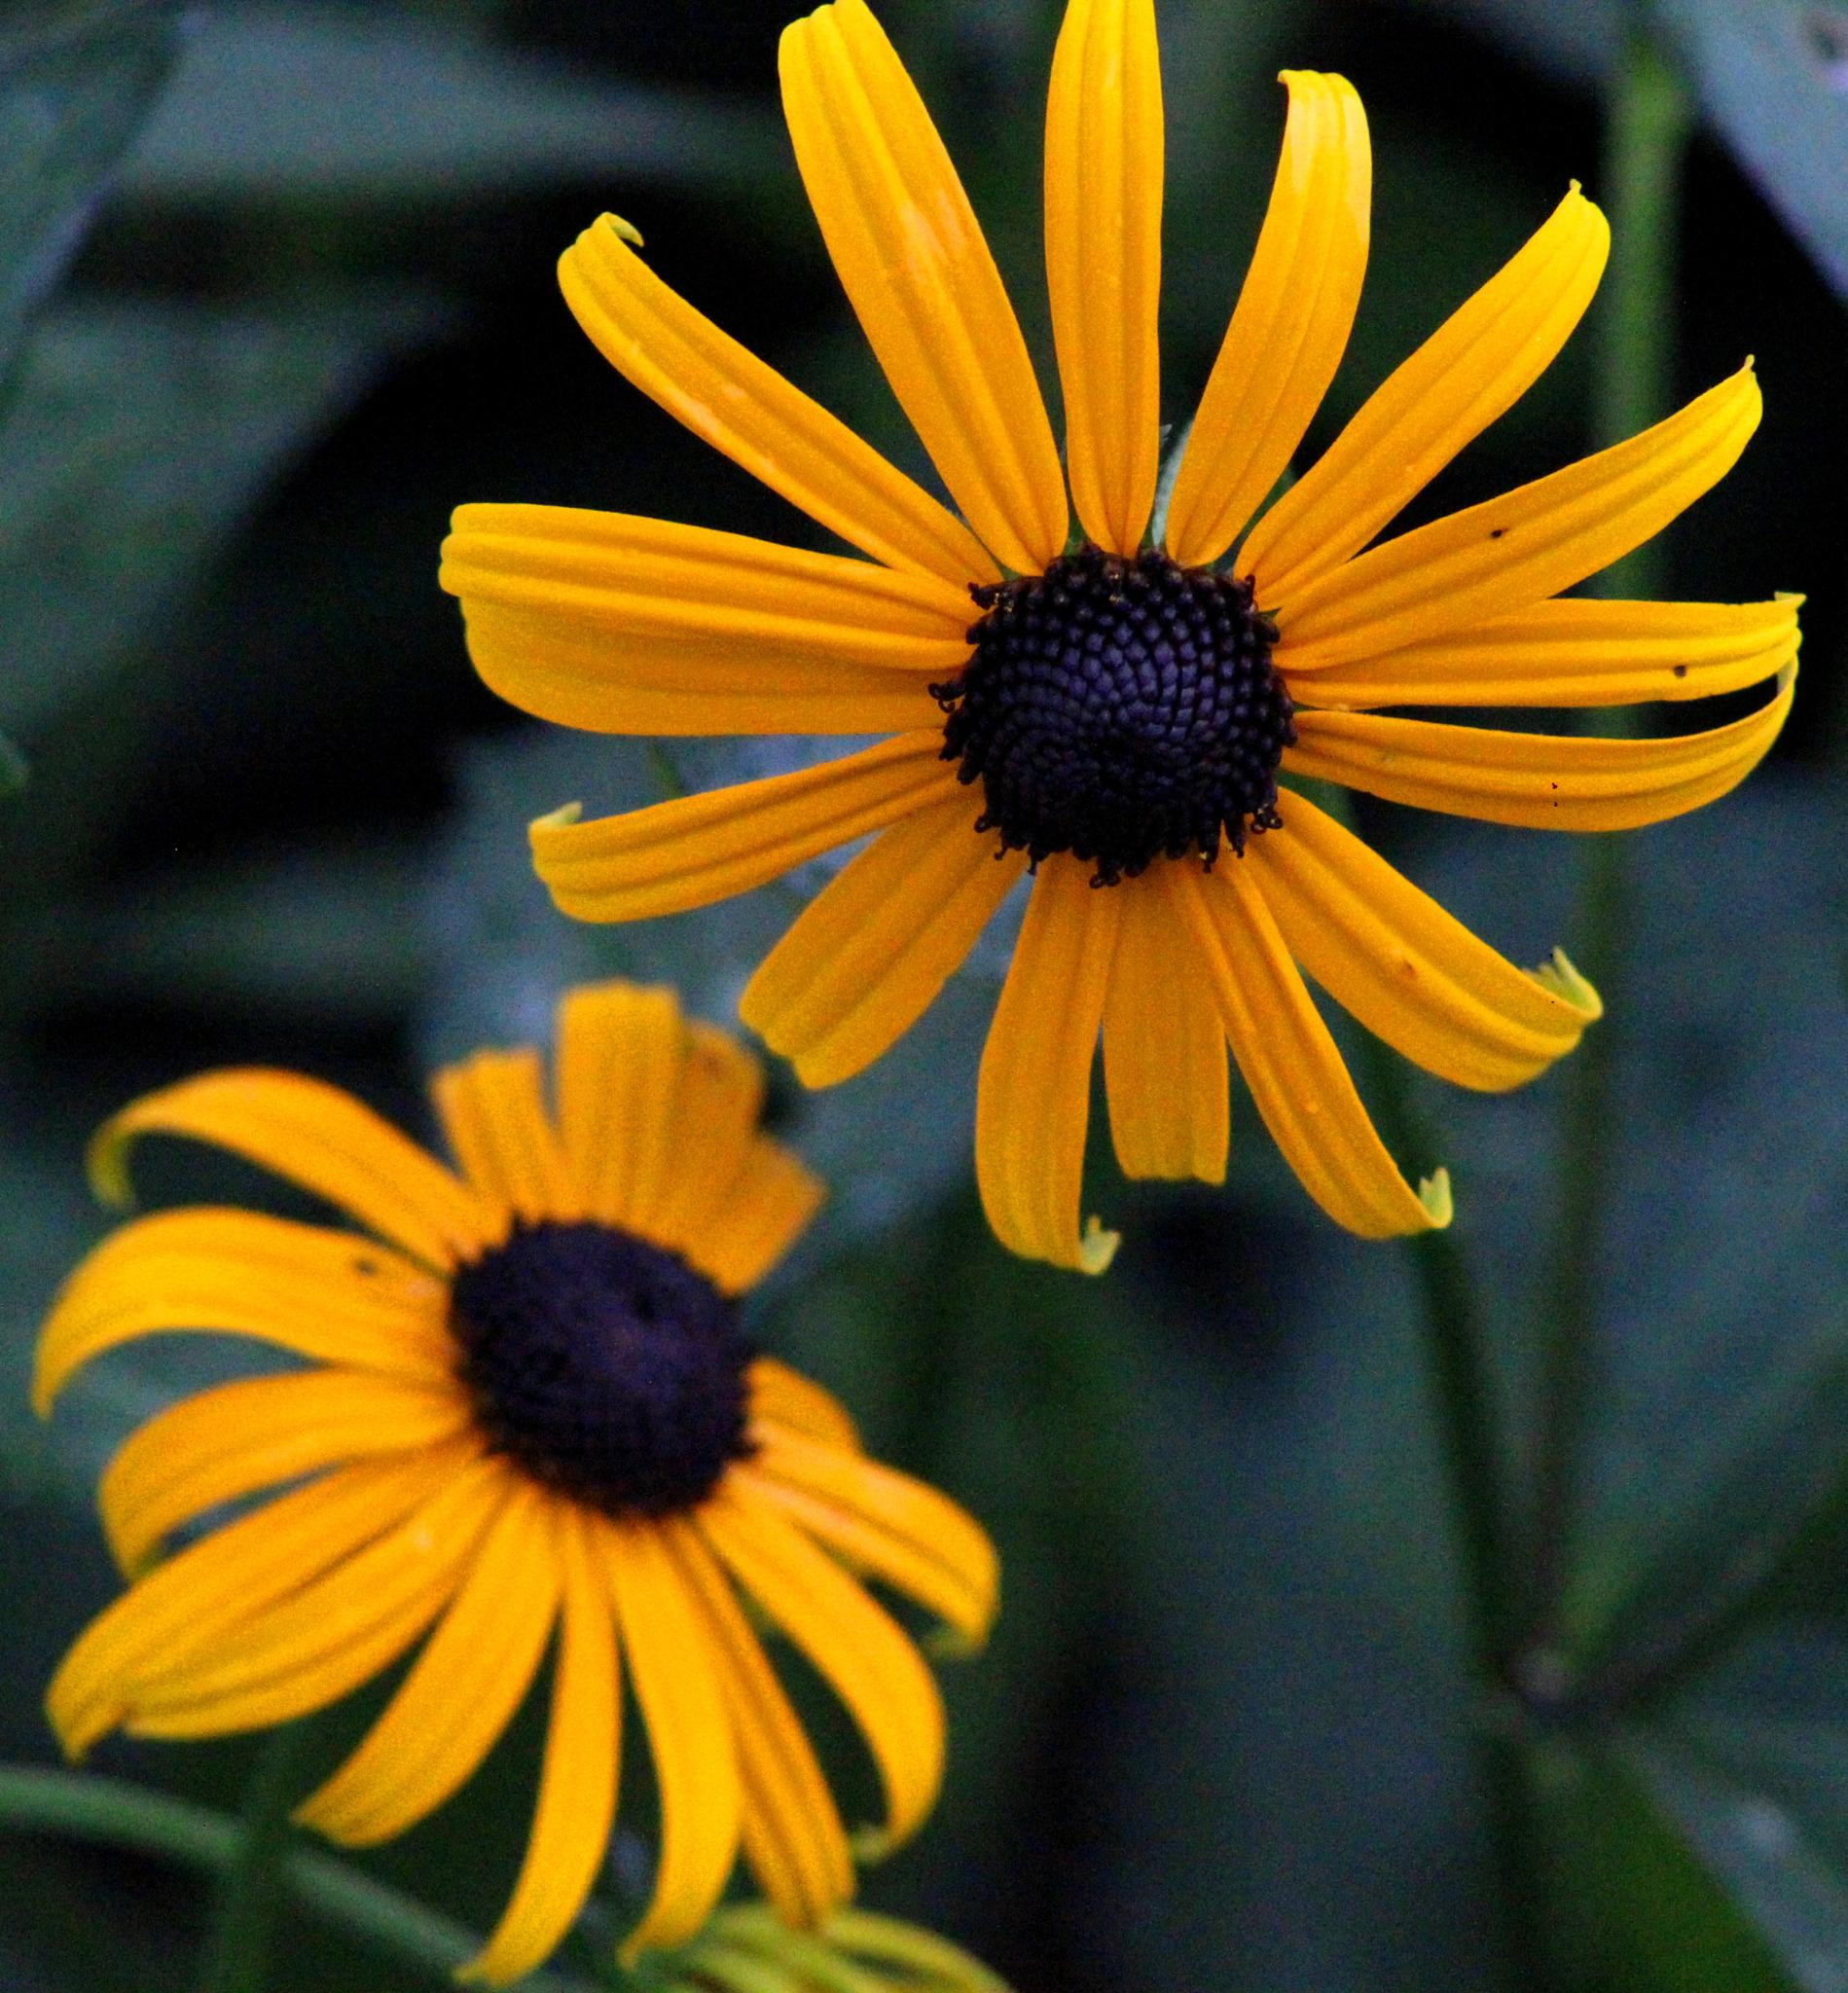 Lazy Eyed Susans by Presnell Photography